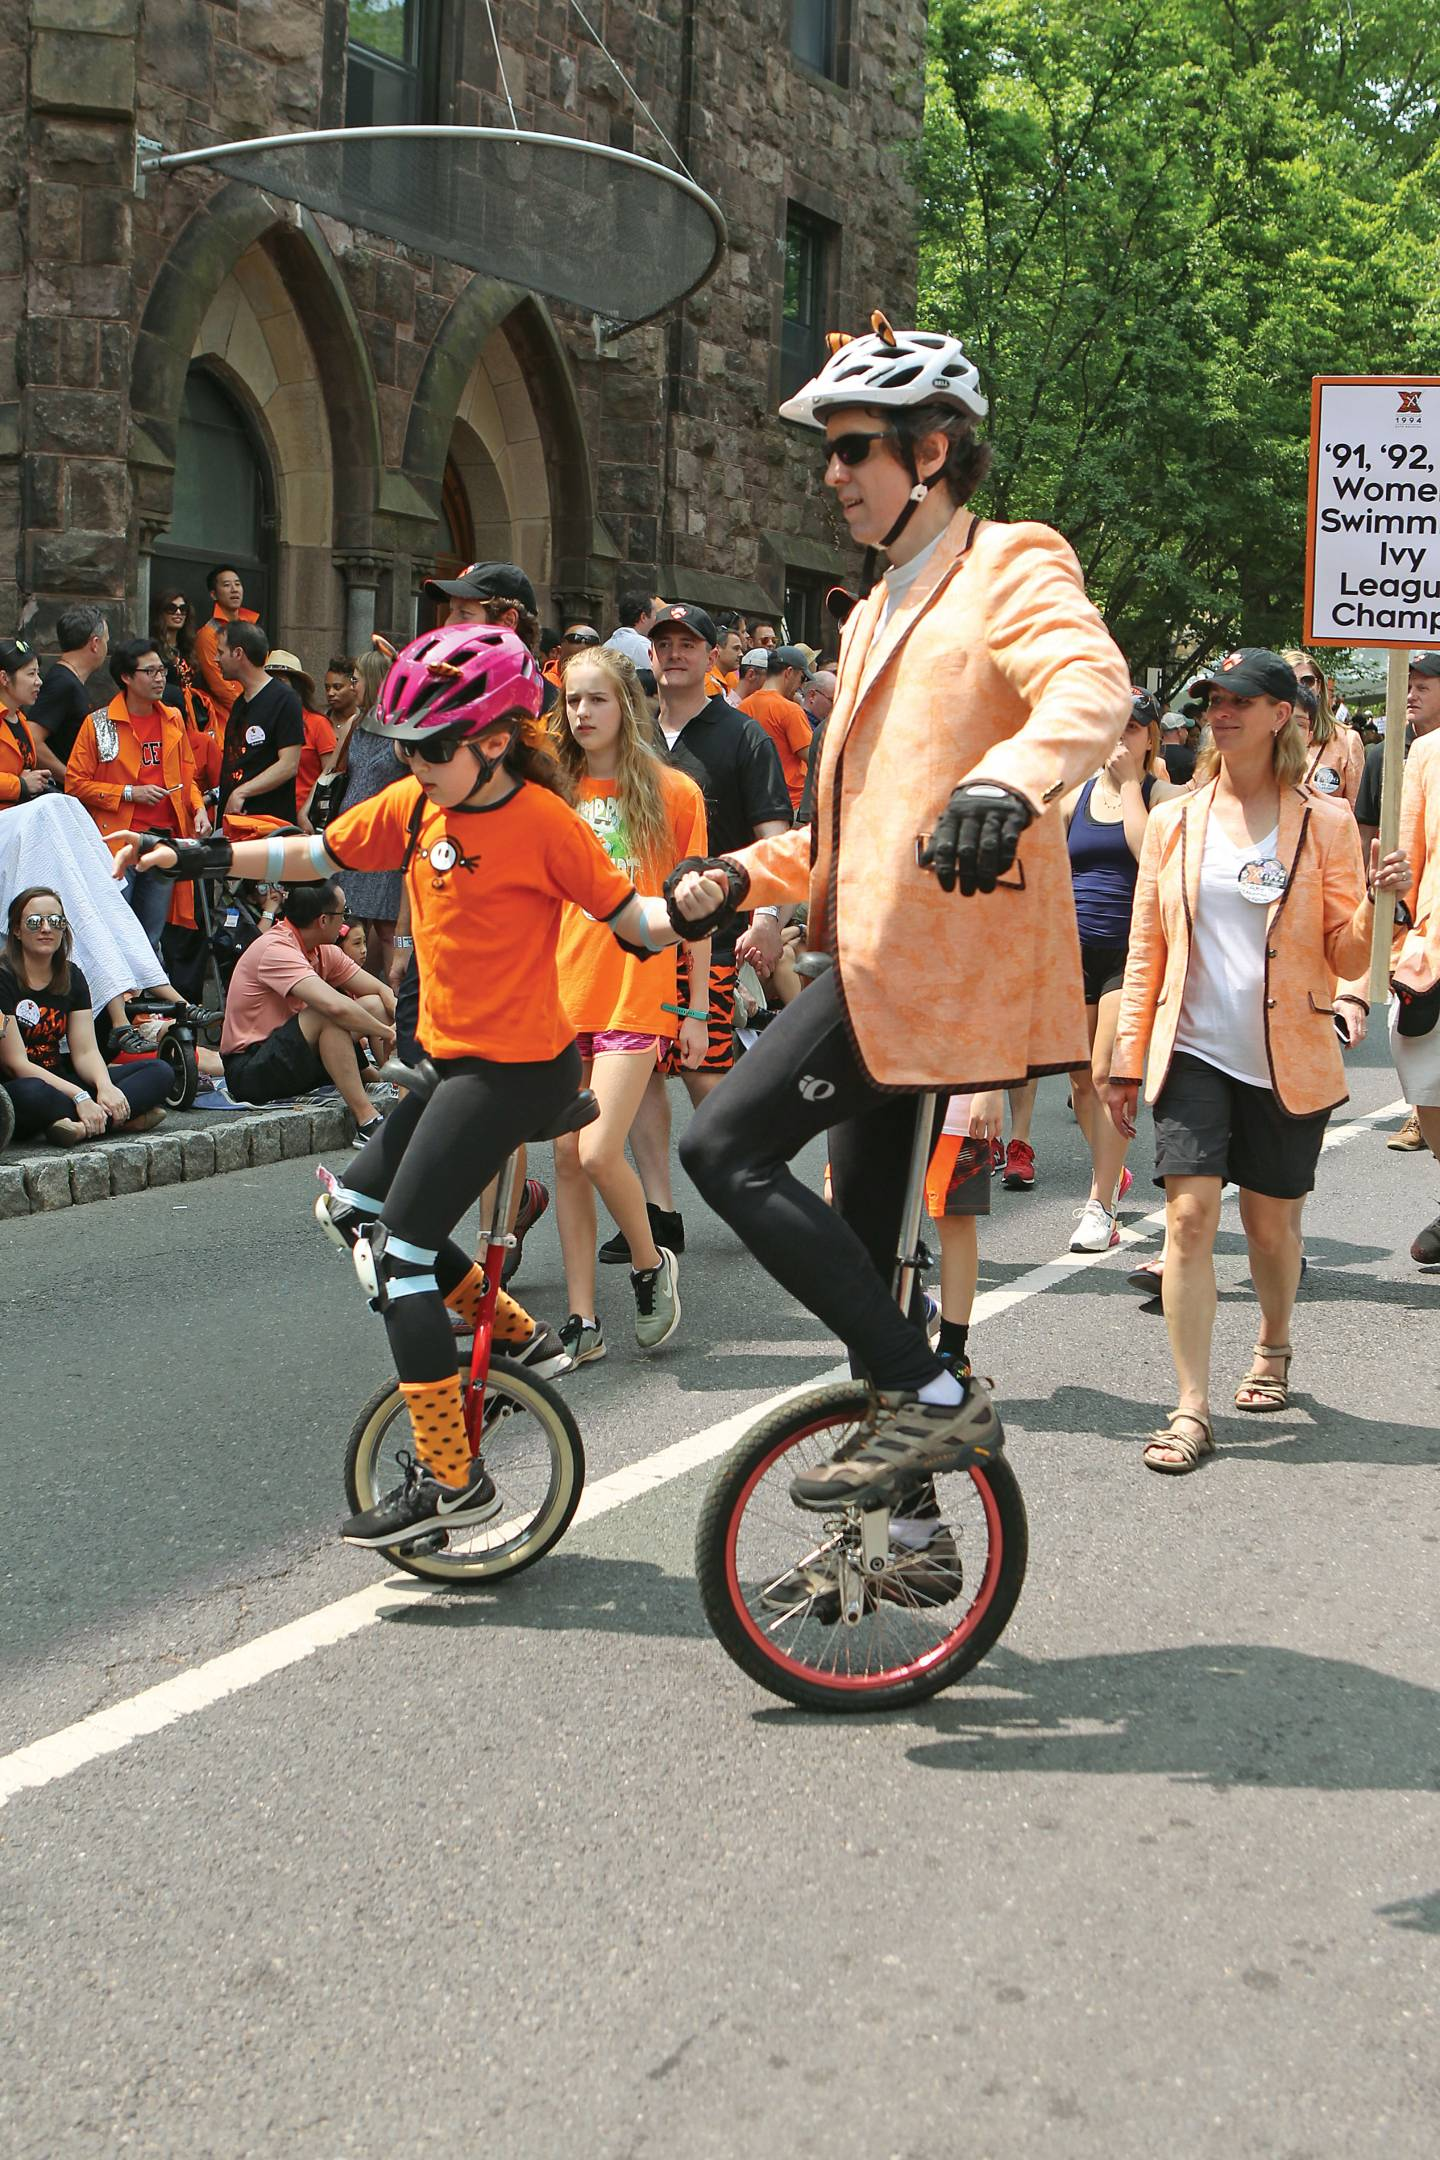 Steven Gubser on a unicycle at P-rade